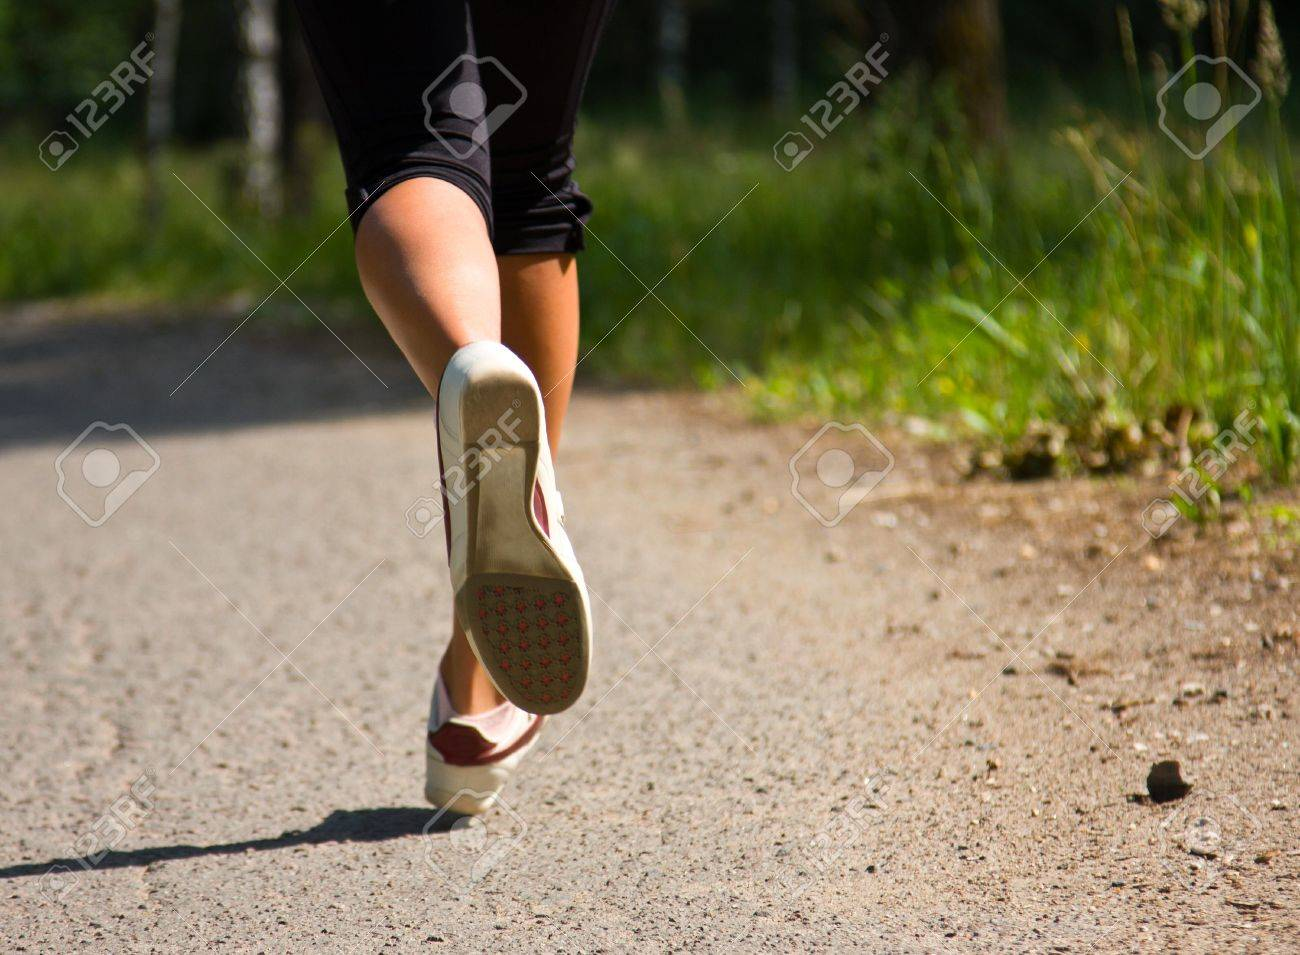 Girl running in the park. Active woman running. A confident female runner has the stamina to conquer all. Stock Photo - 7494033